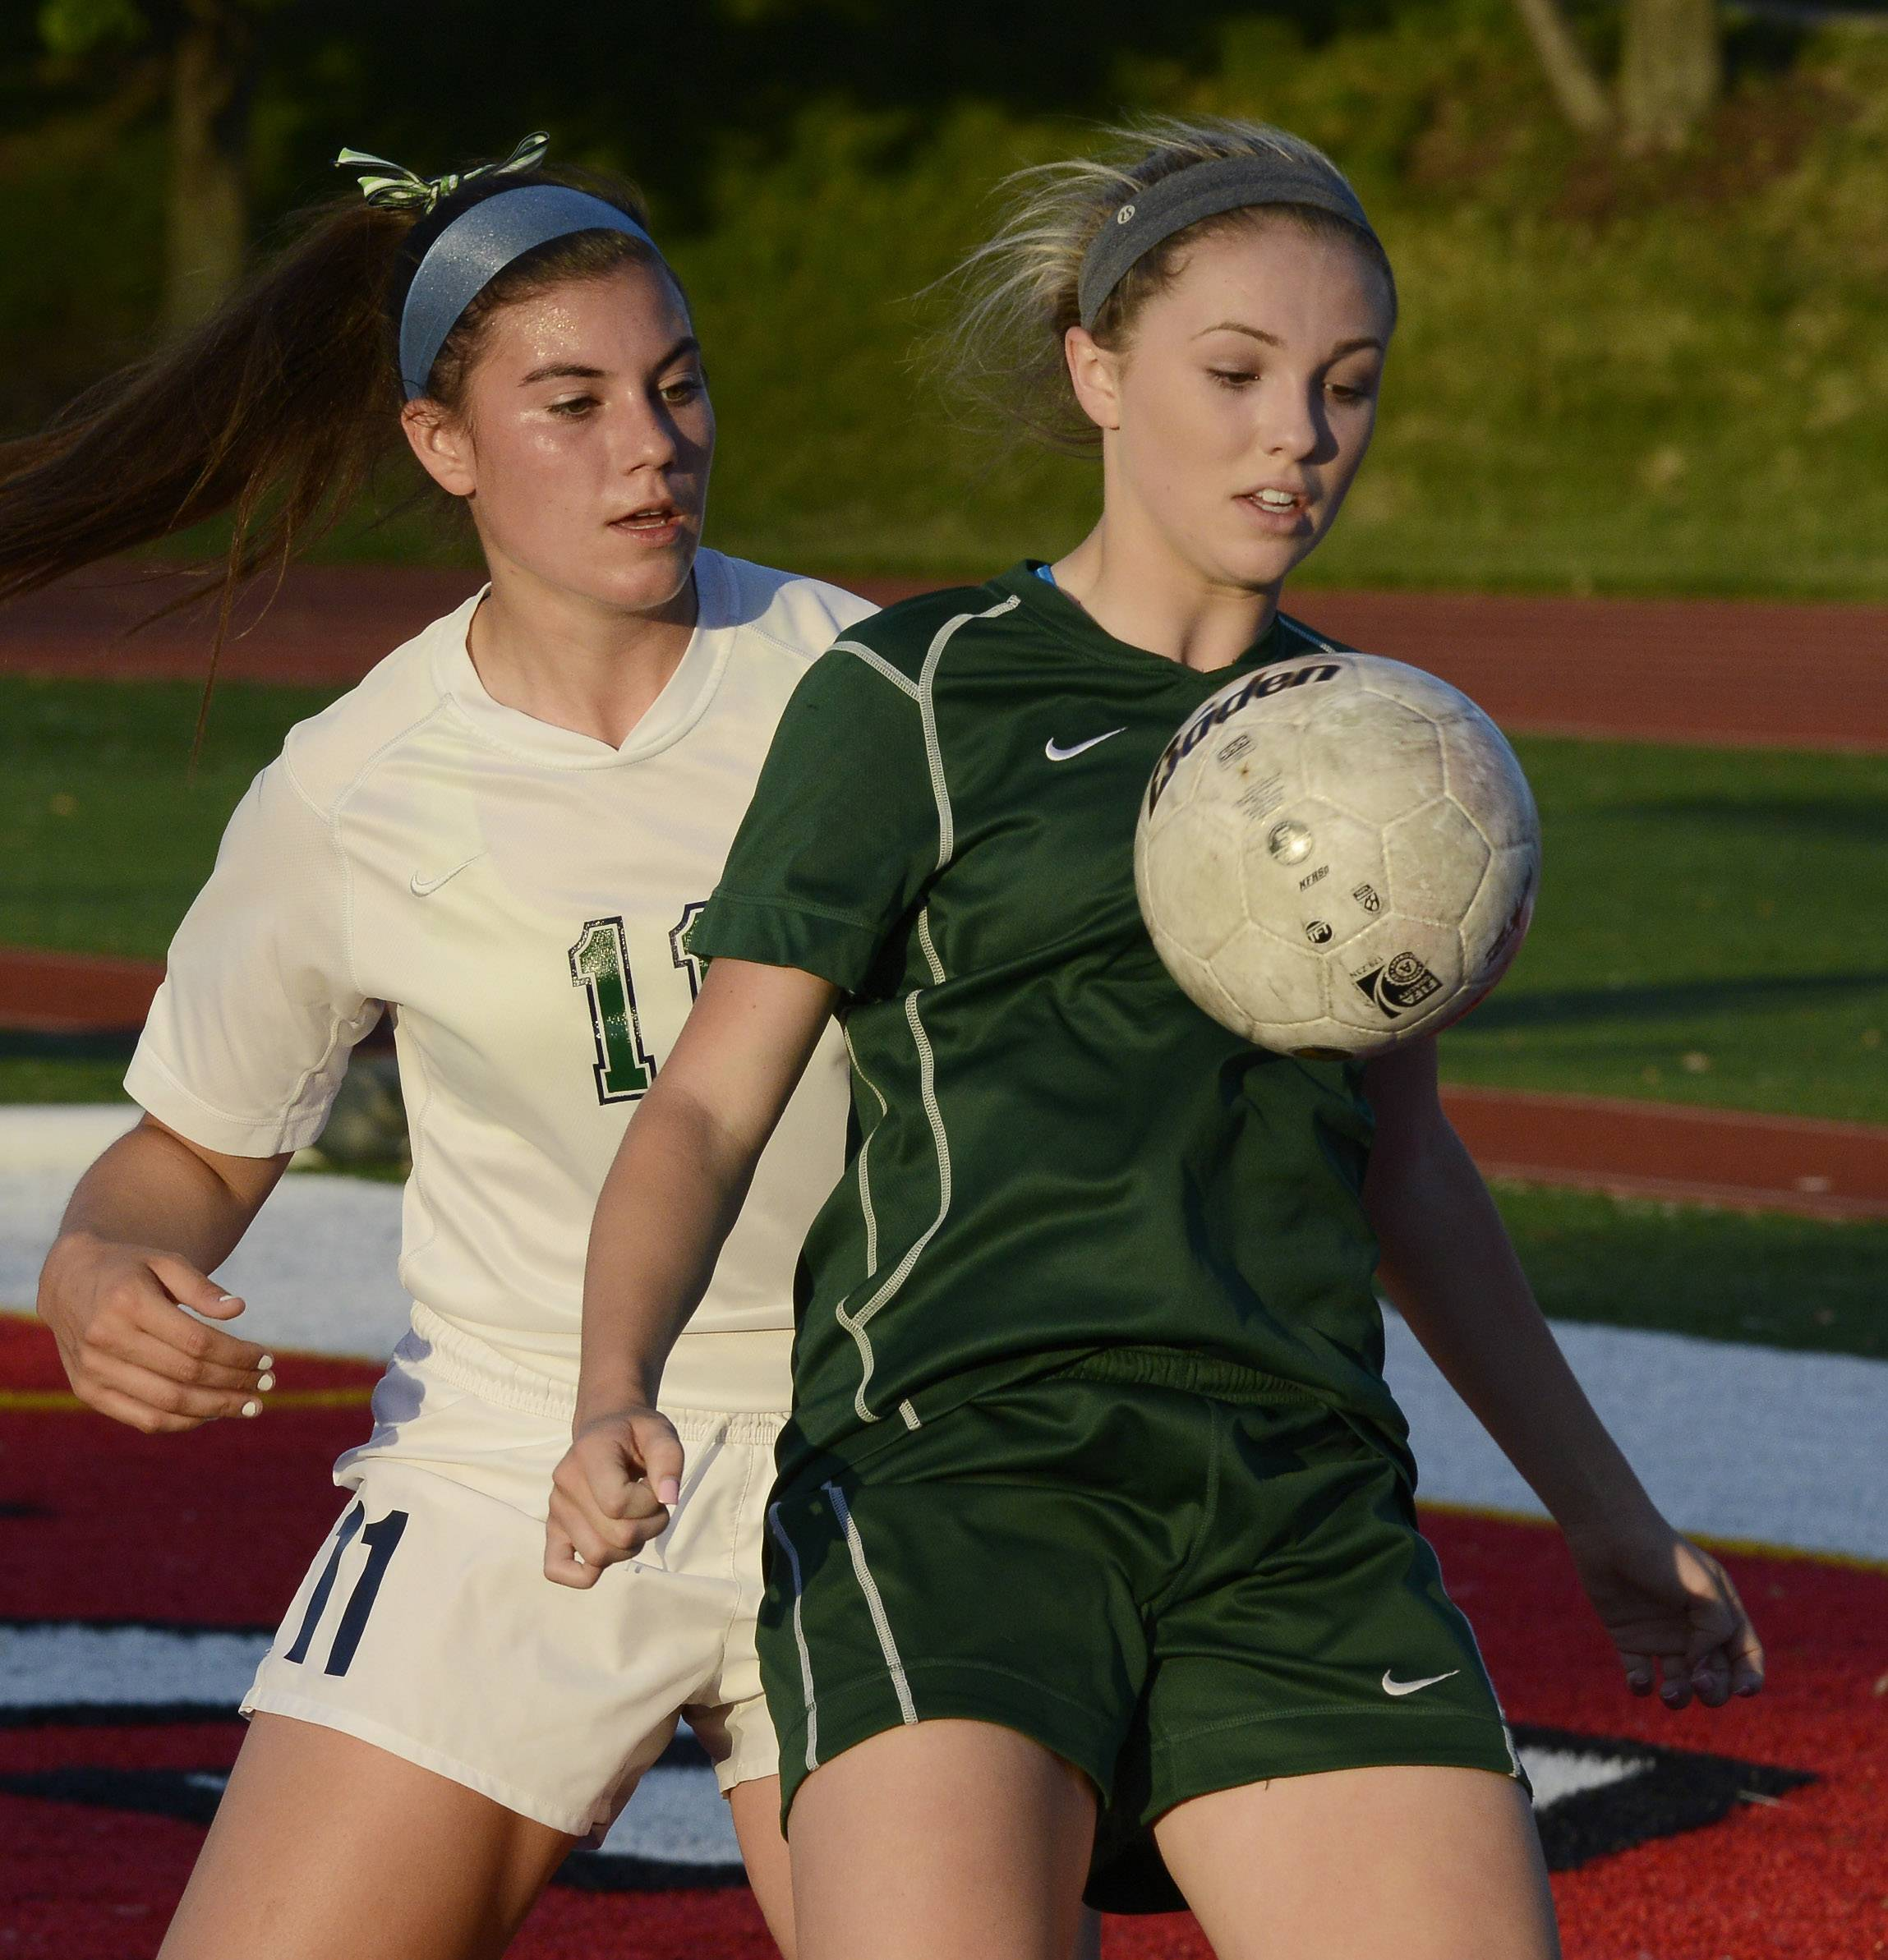 Waubonsie Valley's Maggie Roe gets in front of New Trier's Alex Bukovac after a throw-in during the girls soccer Class 3A state semifinal at North Central College in Naperville Friday.